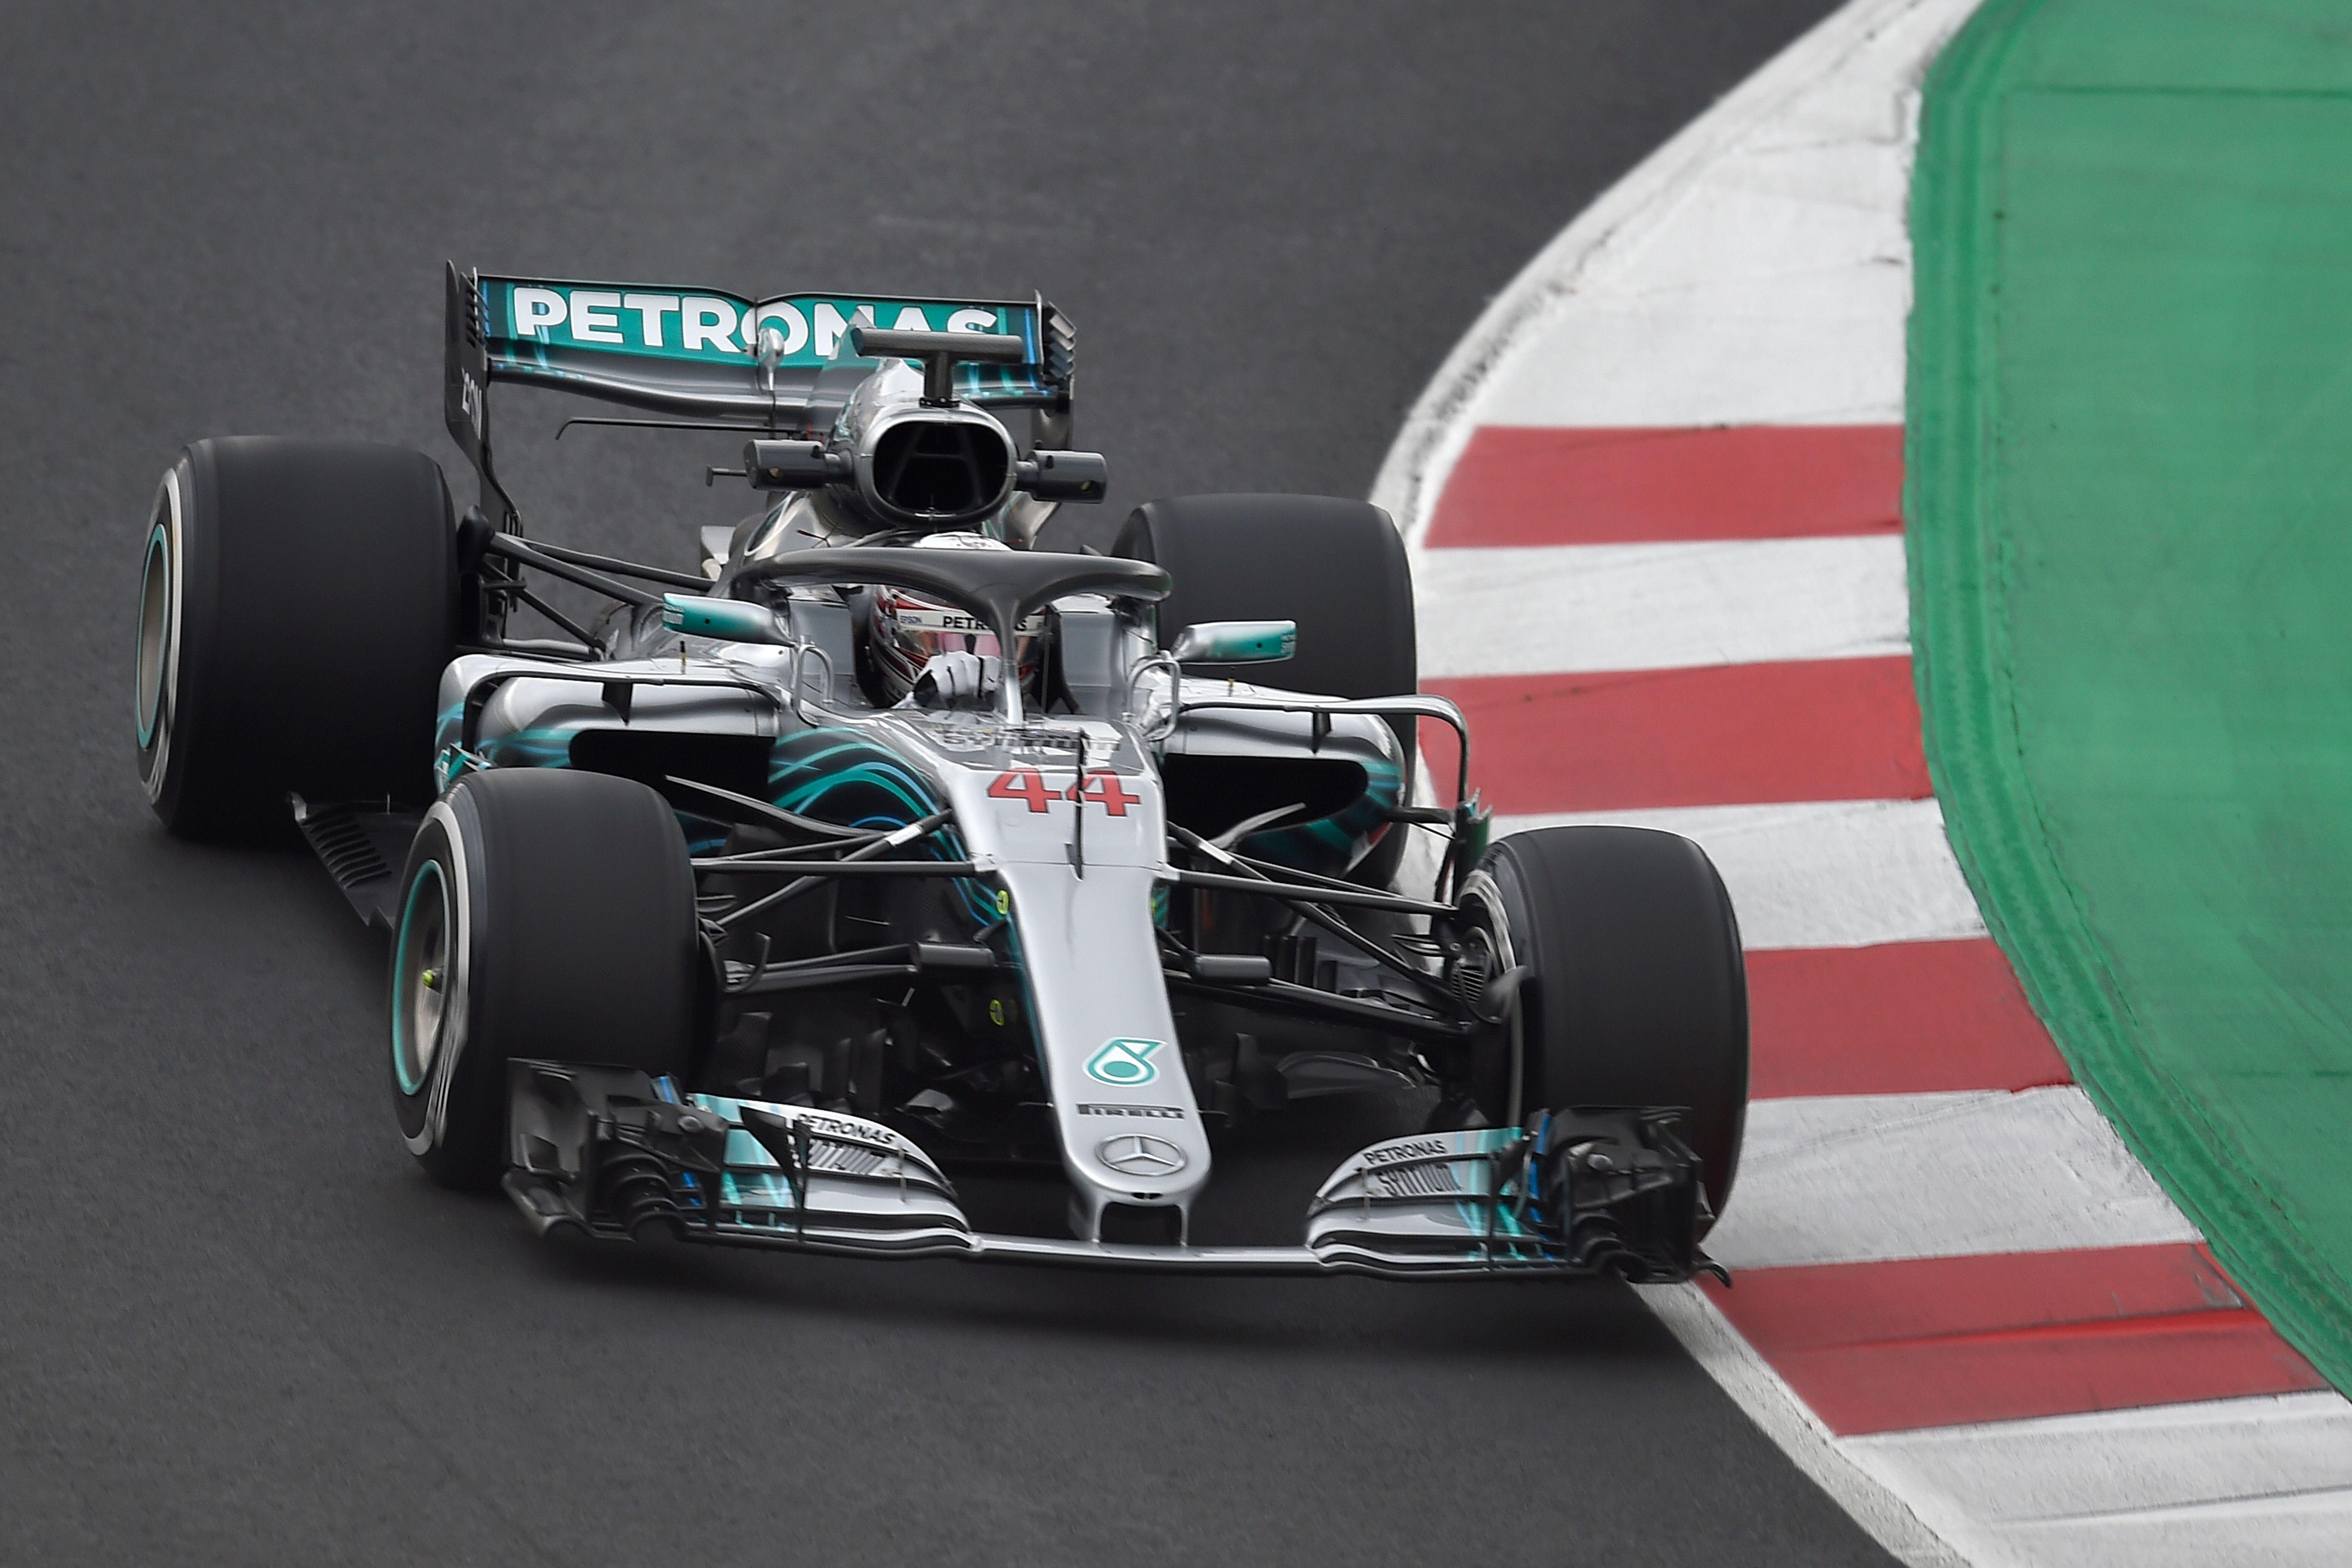 Lewis Hamilton has only mustered 25 laps over three days at theCircuit de Catalunya